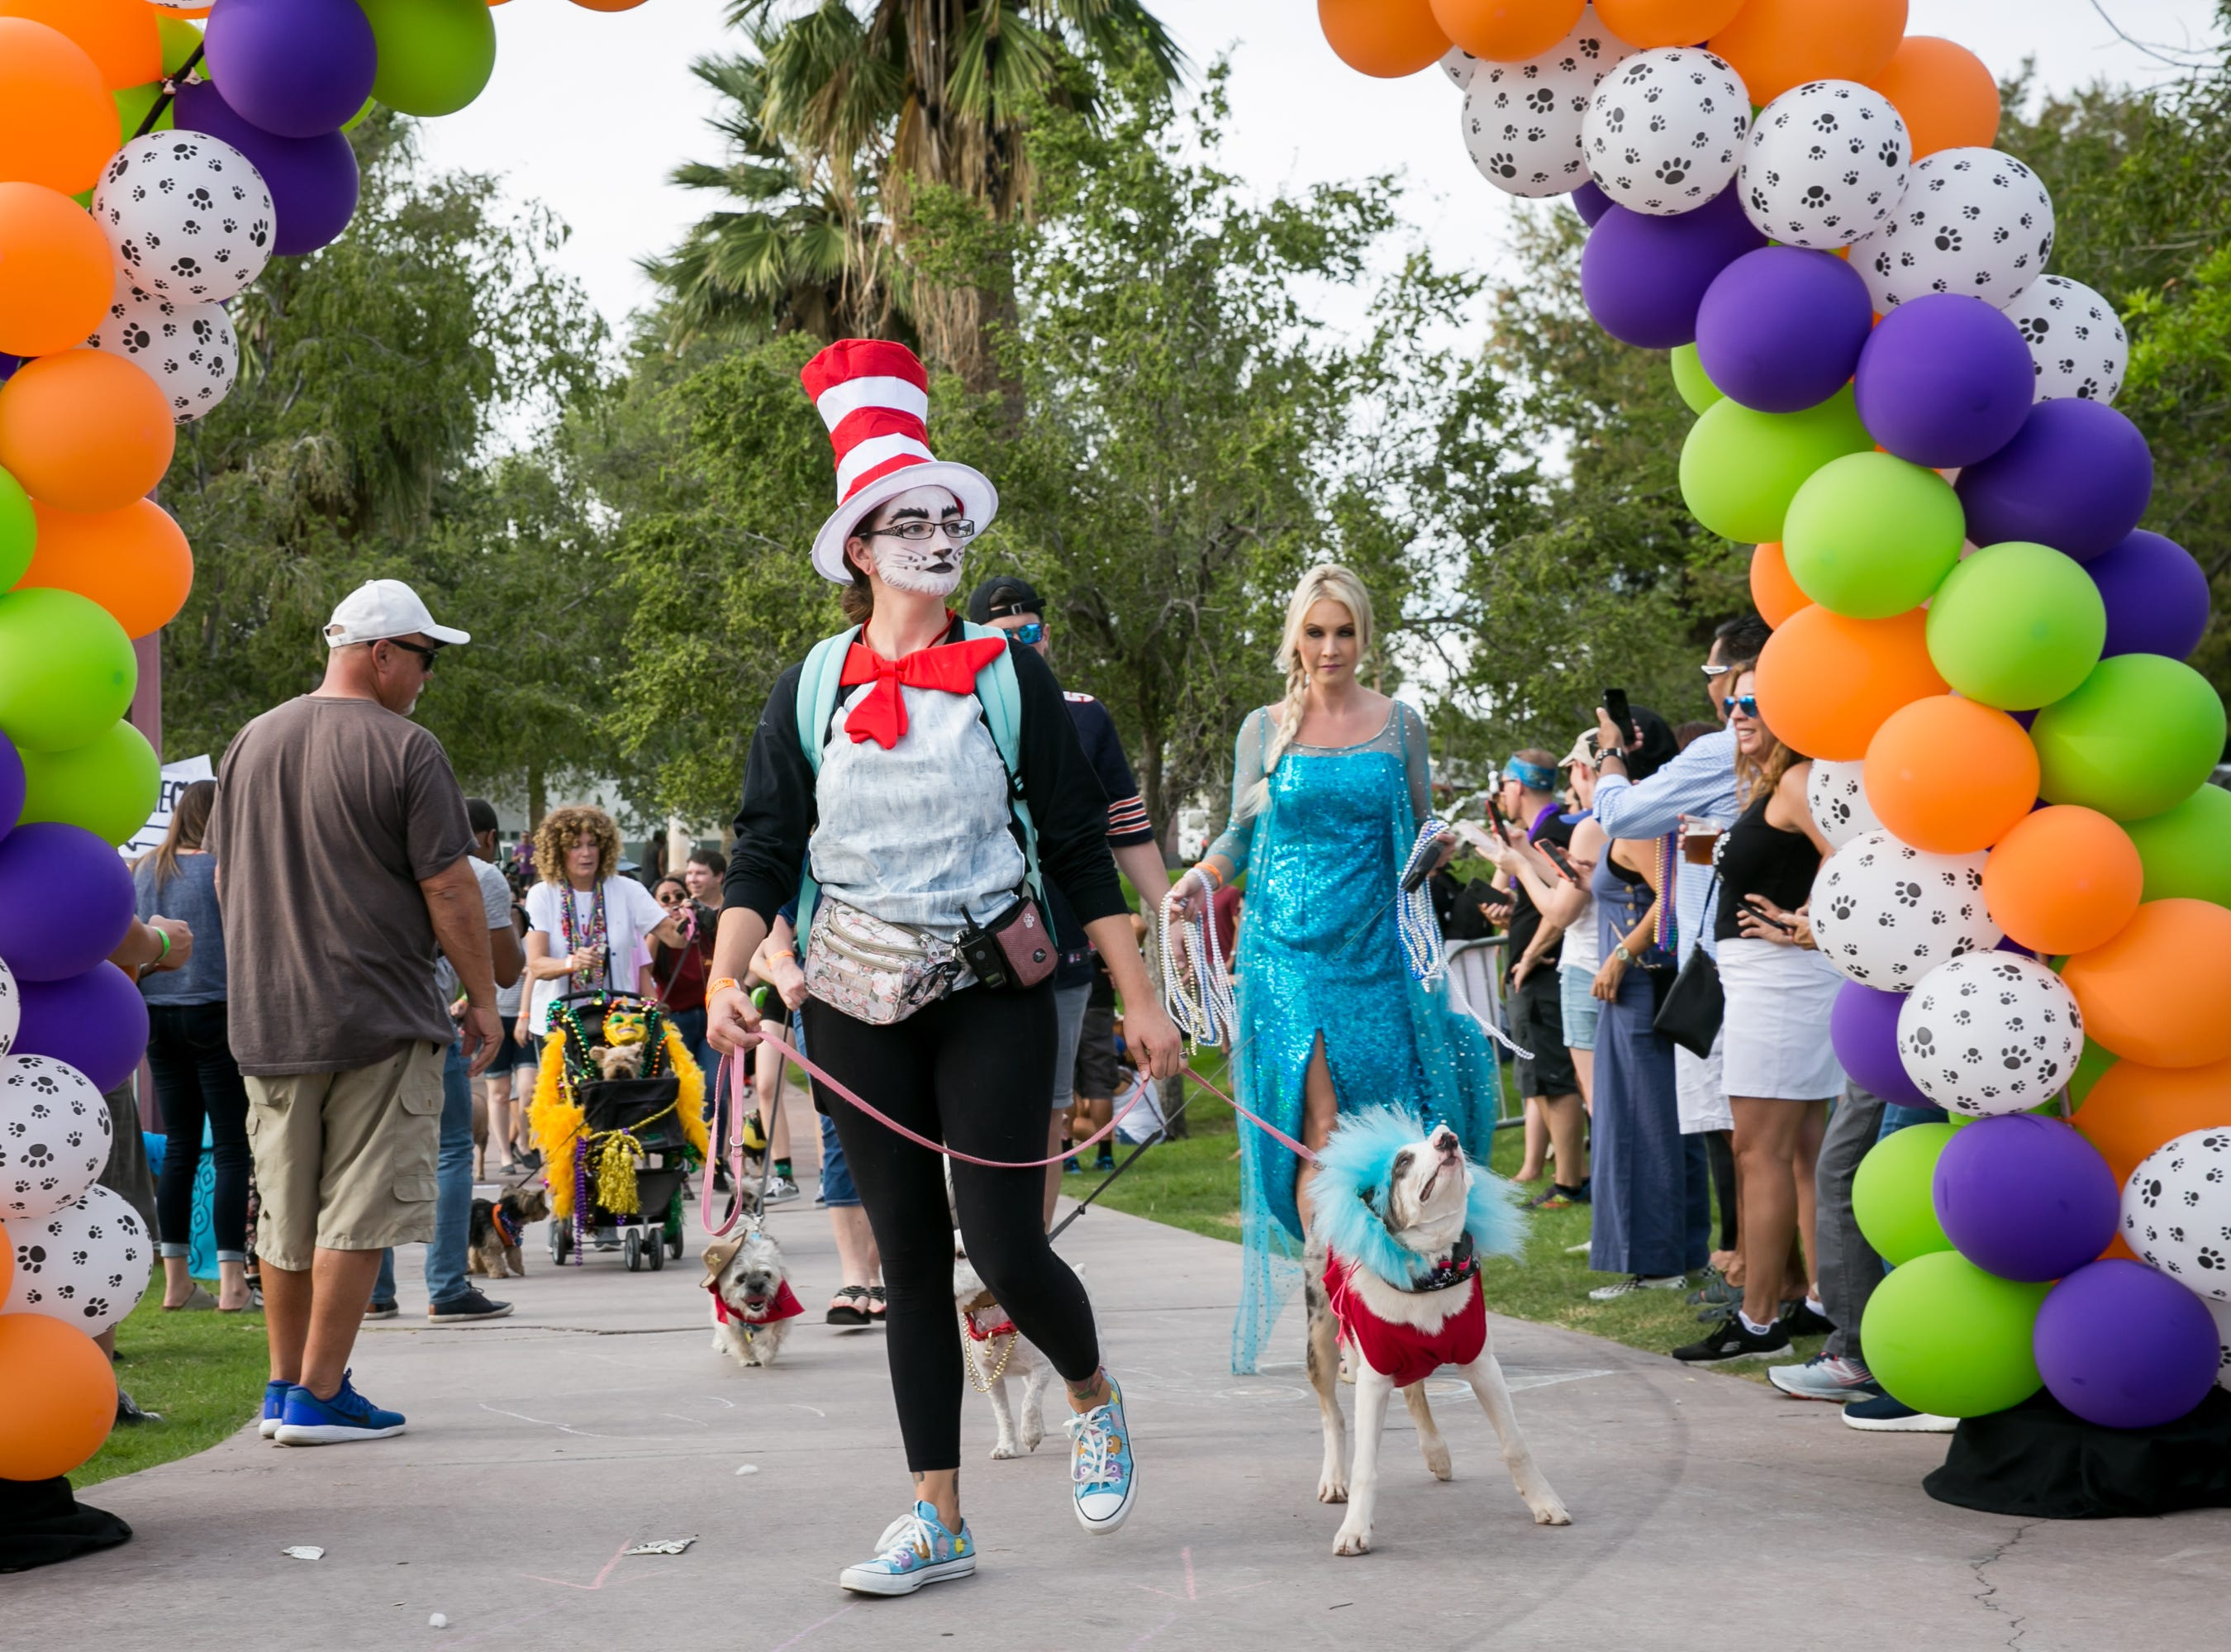 So many great costumes were spotted during Howl-o-Ween at Hance Park on Sunday, October 28, 2018.